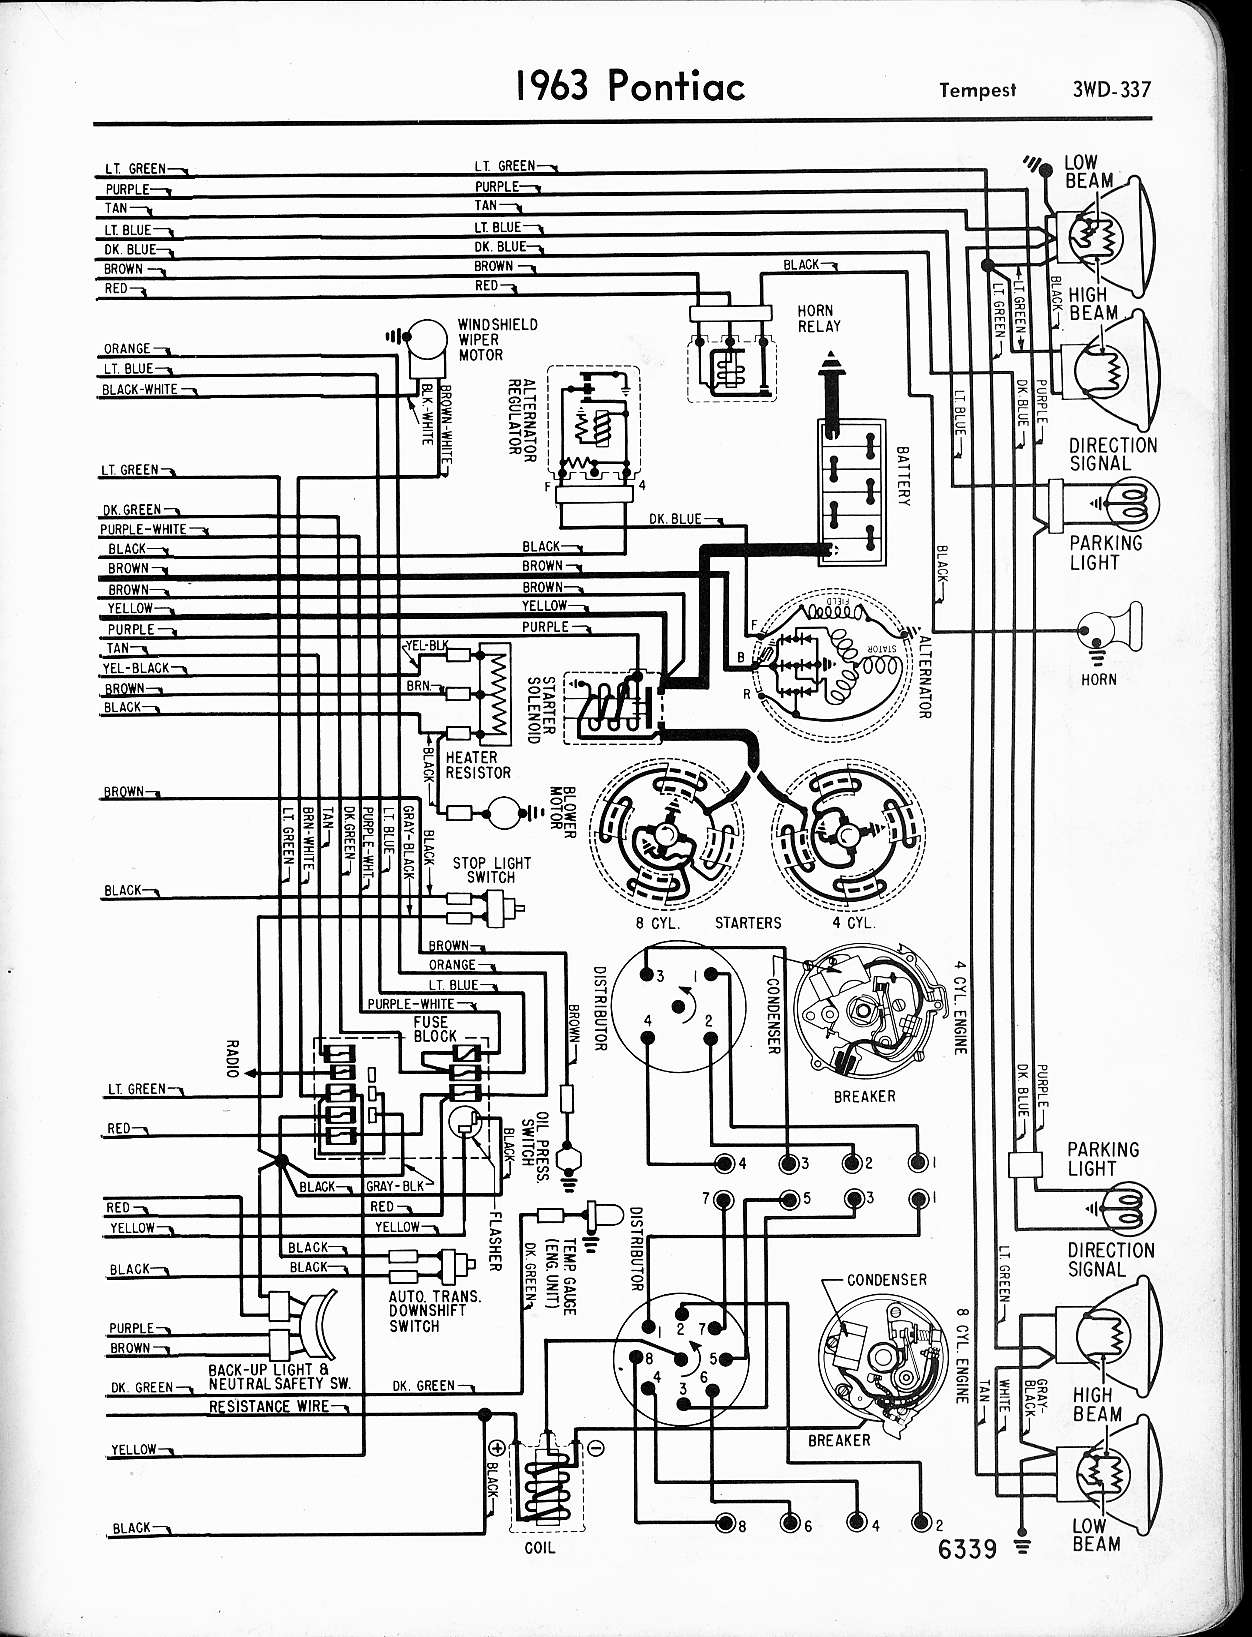 2006 Gto Wiring Diagram Worksheet And Ls2 Engine Wallace Racing Diagrams Rh Wallaceracing Com Starter Harness